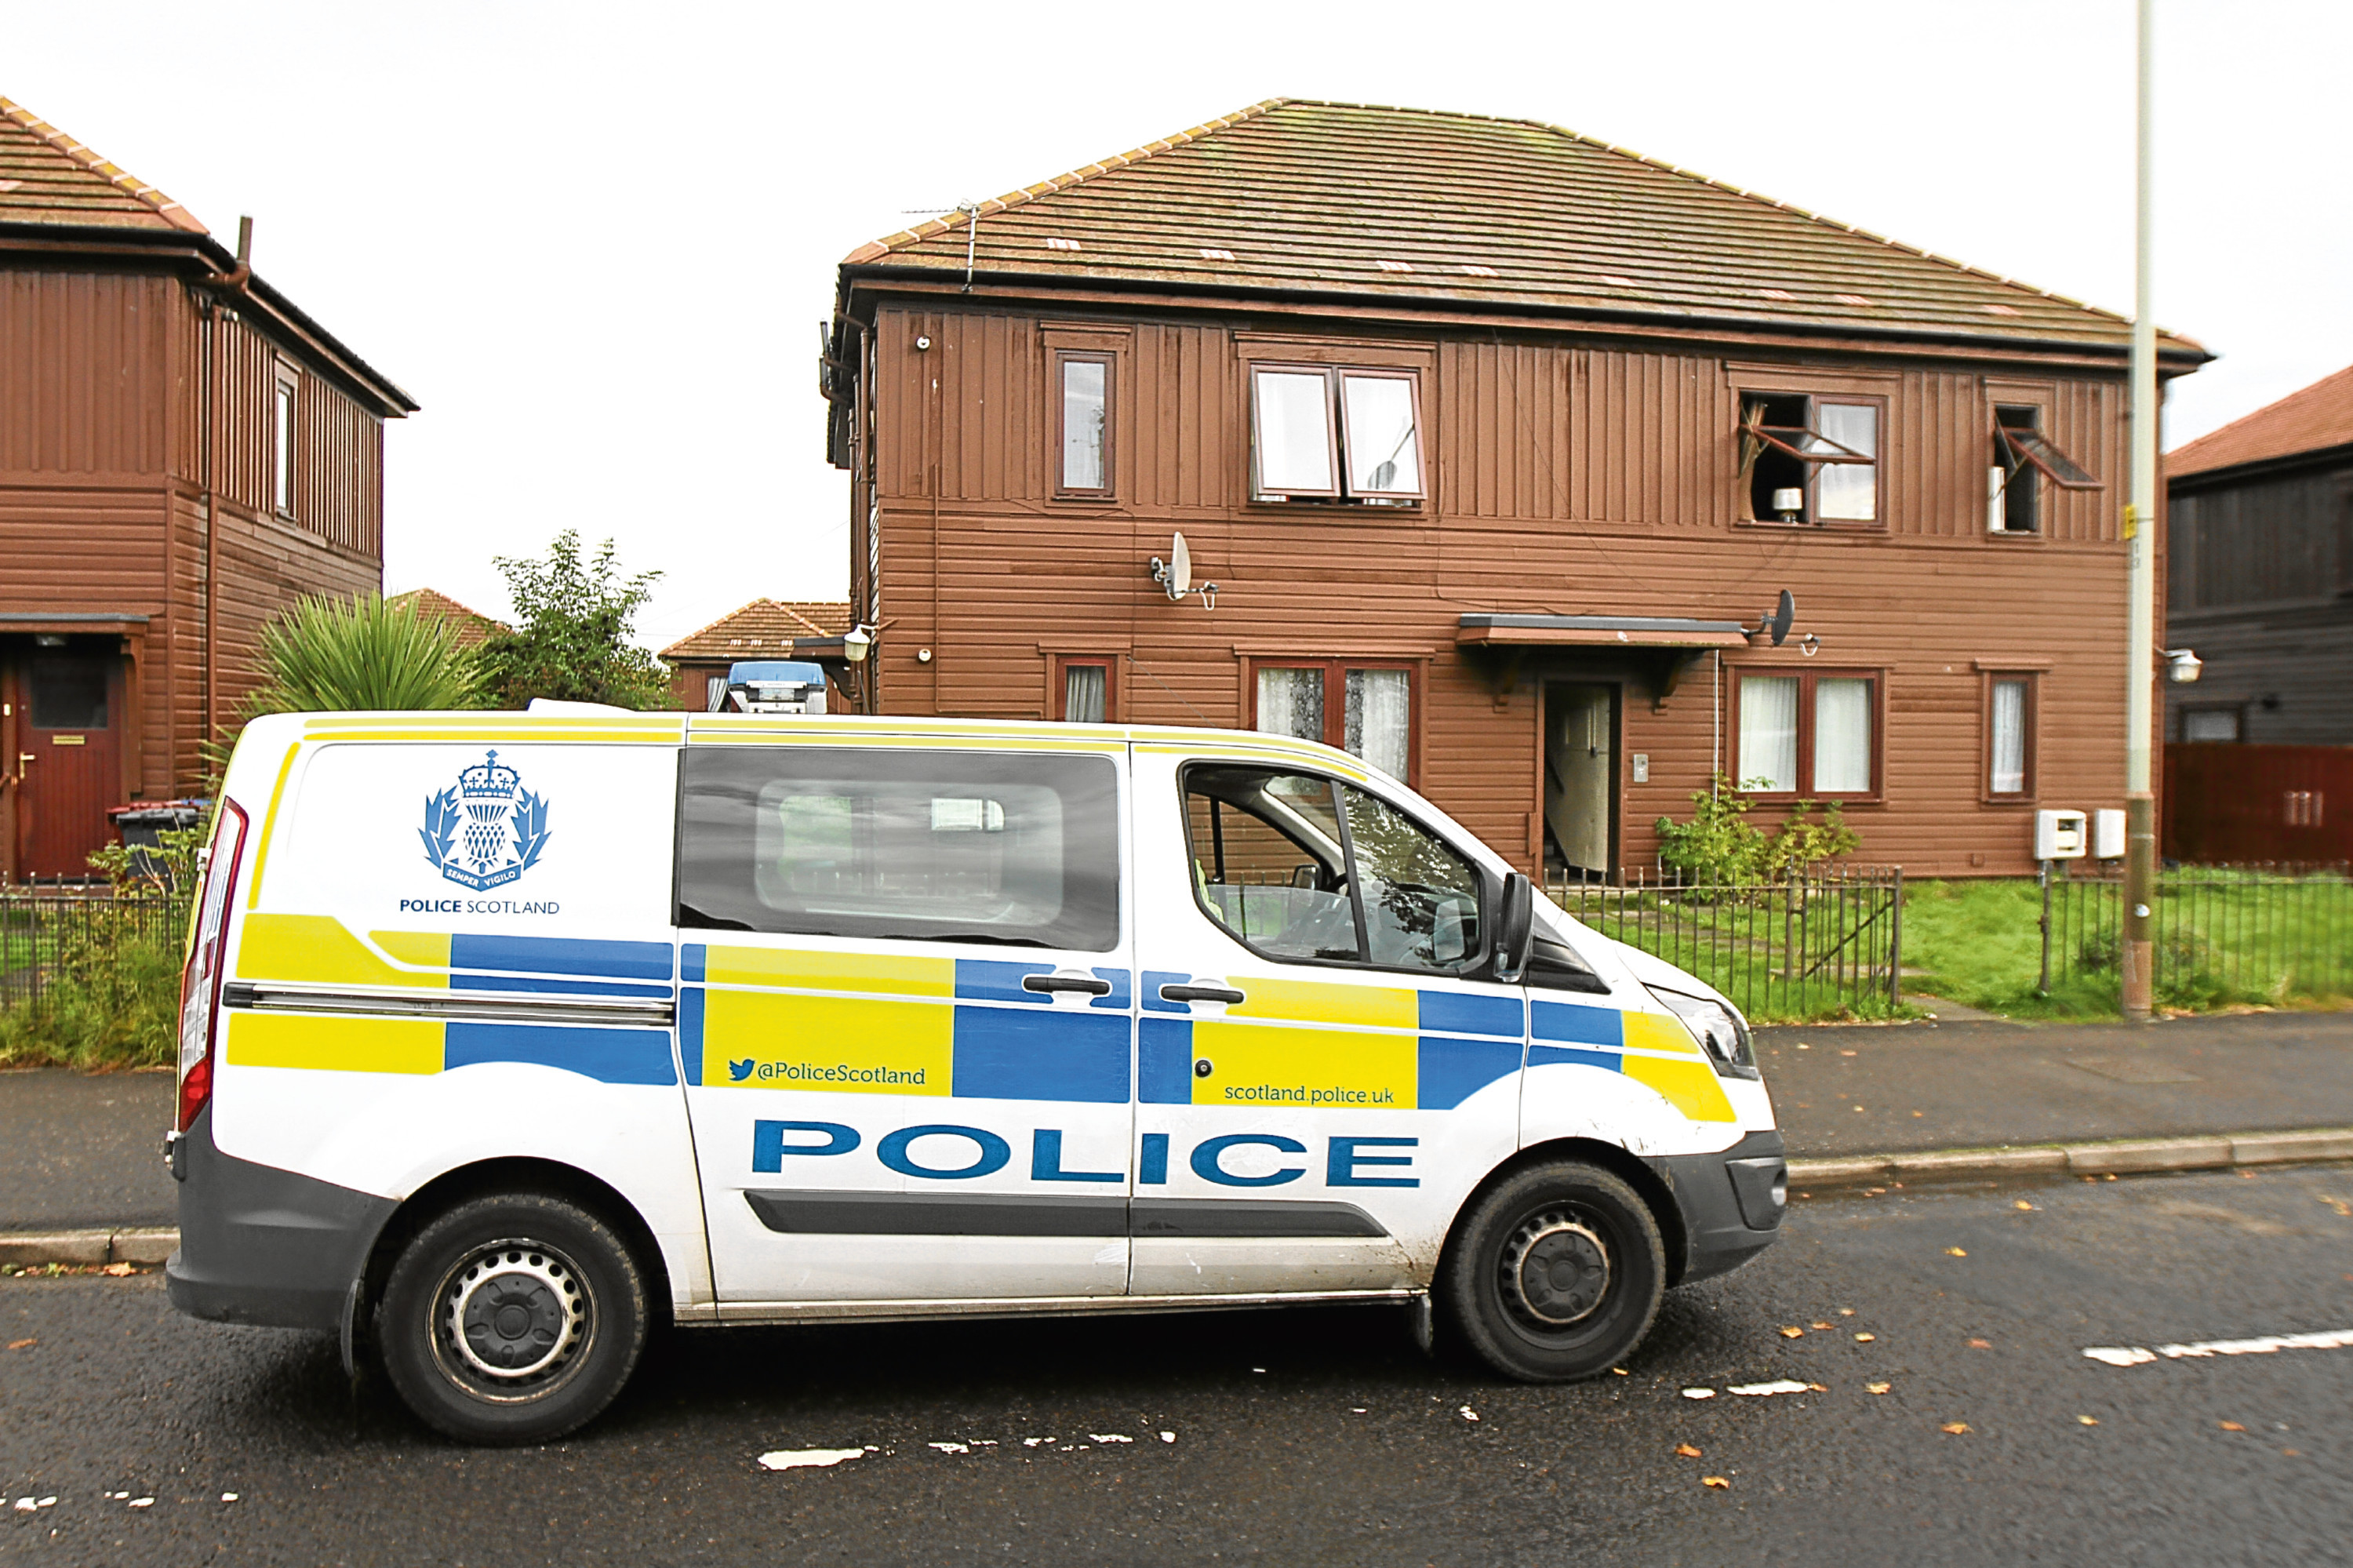 Courier/Tele News. Sarah/Scott story. The fire brigade had to rescue a person from a building on Glenconnor Drive, Dundee last night after their door in the communal stairwell was set alight. Neighbours were trapped in there home by the fire and thick smoke. Pic shows; police outside the house at 17/19 Glenconnor Drive. Friday, 29th September, 2017.